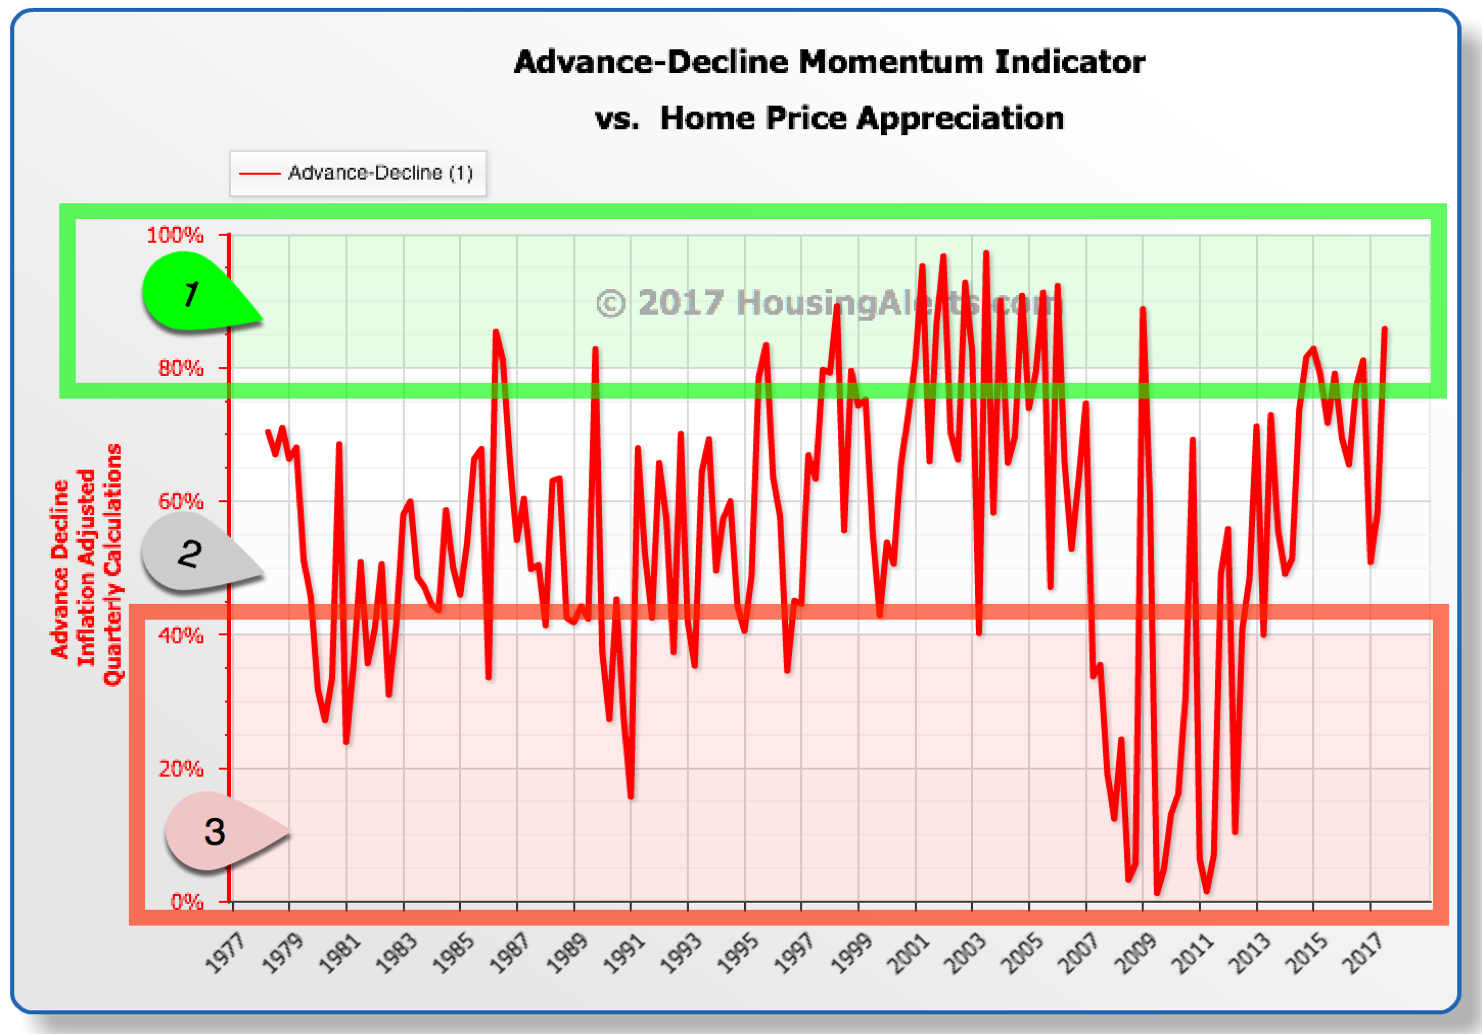 Advance-Decline Momentum Indicator vs Home Price Appreciation Chart Quarter-Over-Quarter 1977-2017